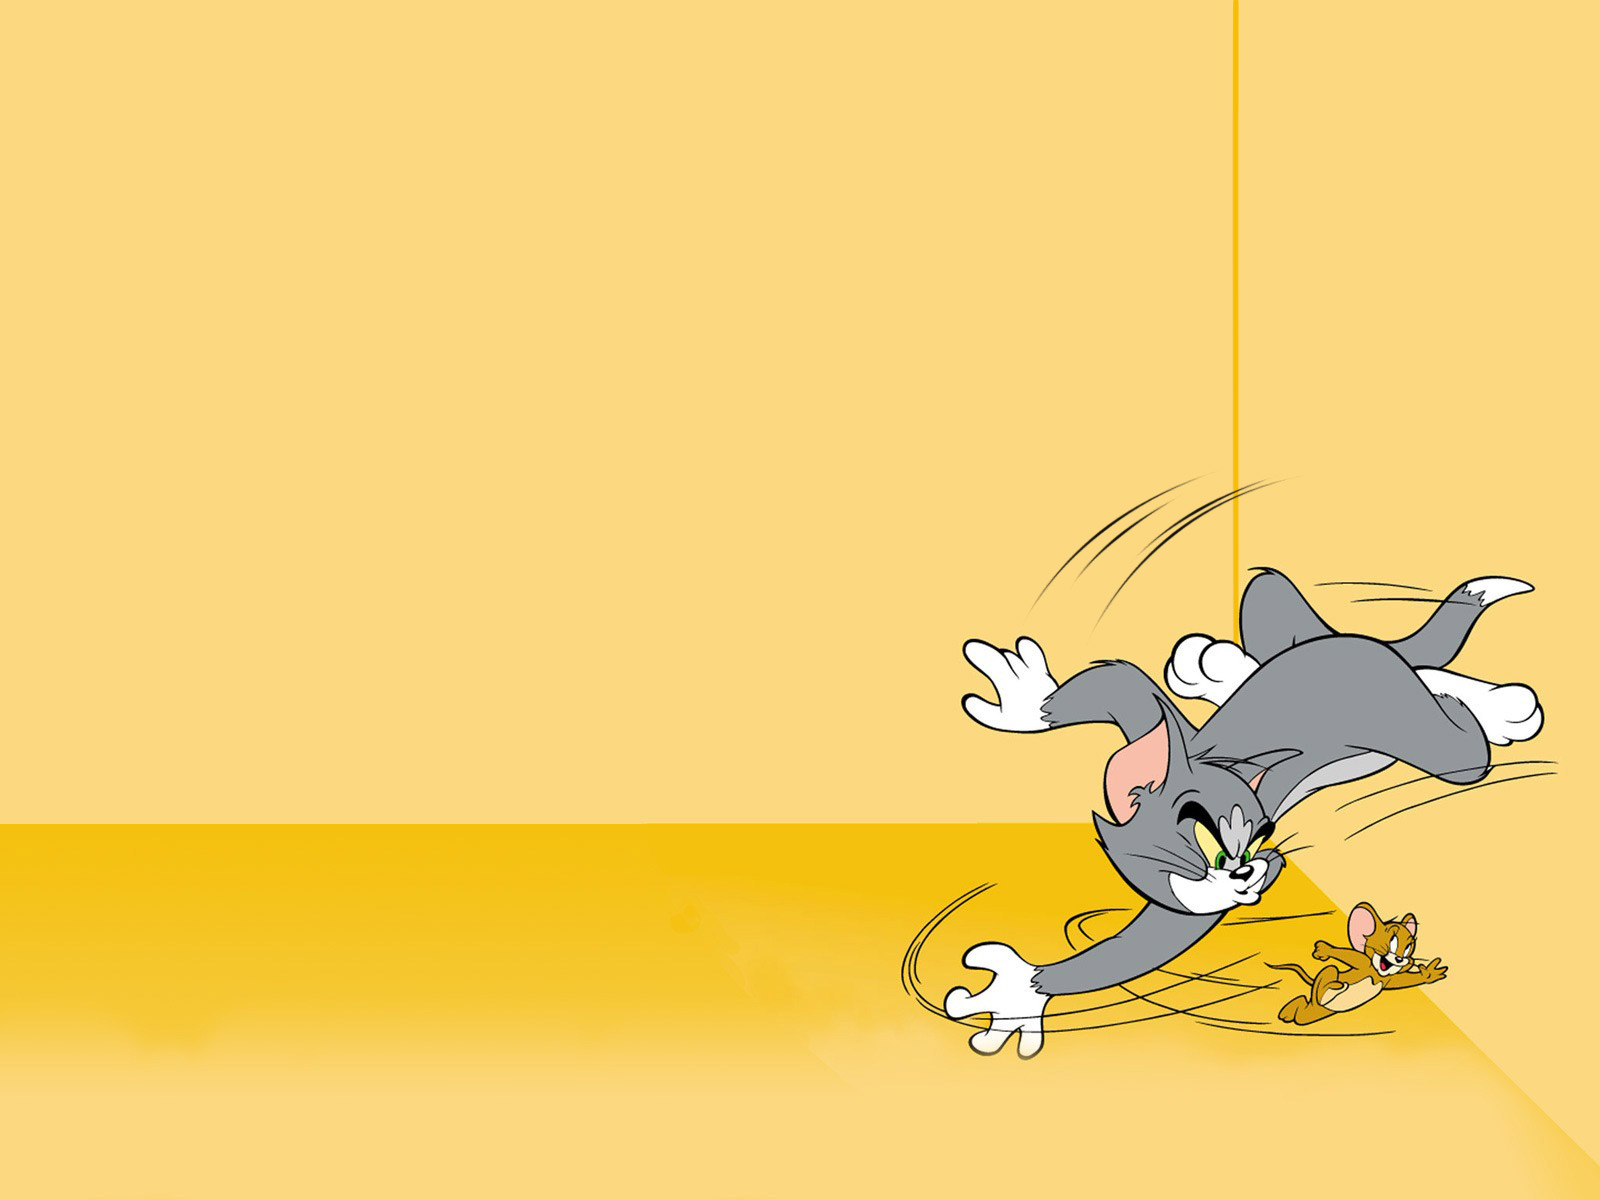 Tom and Jerry Cartoon PPT Background Background for Powerpoint Program